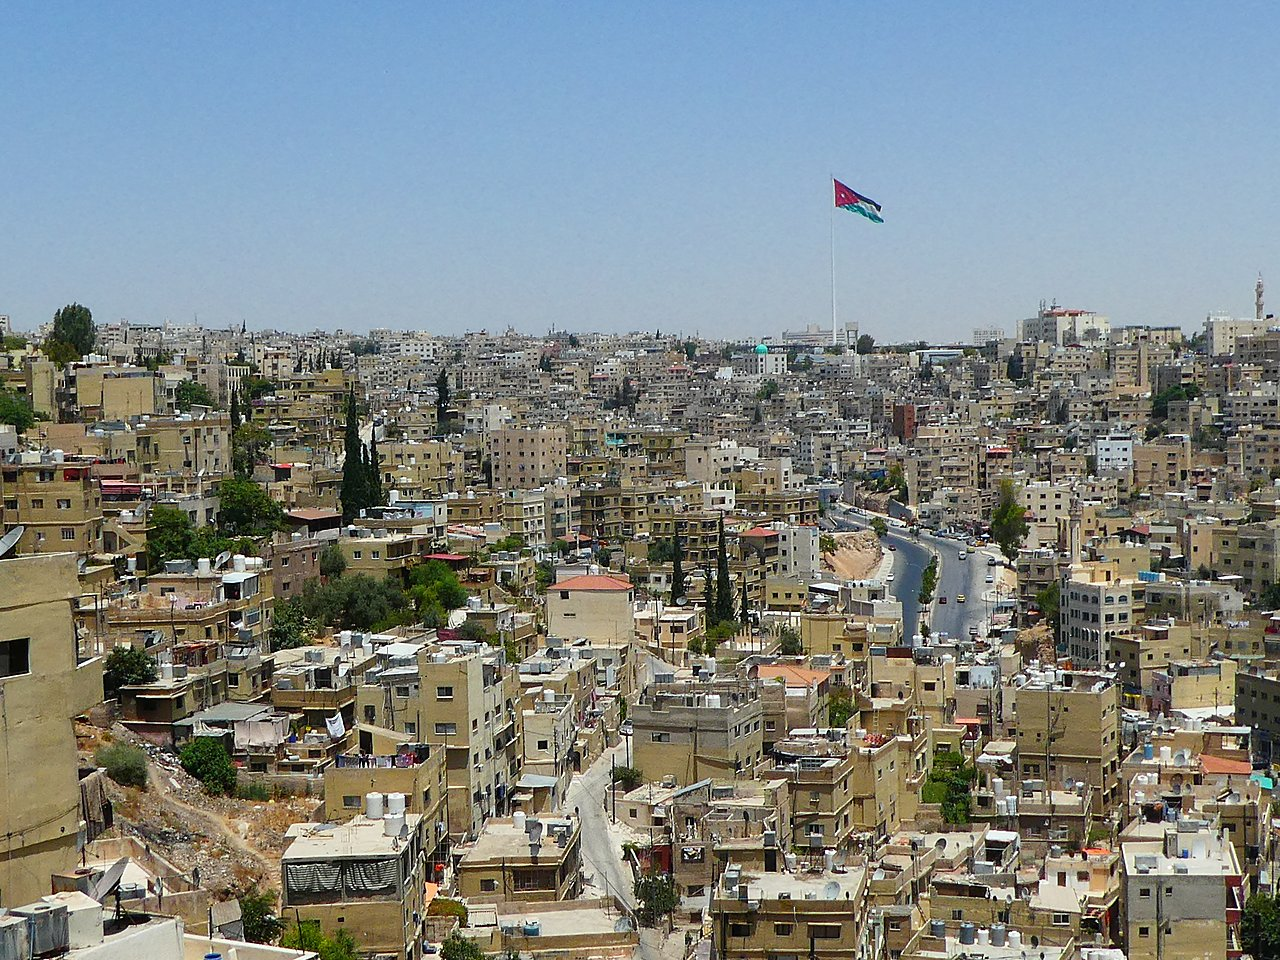 view across Amman | Photo taken by Sarah m